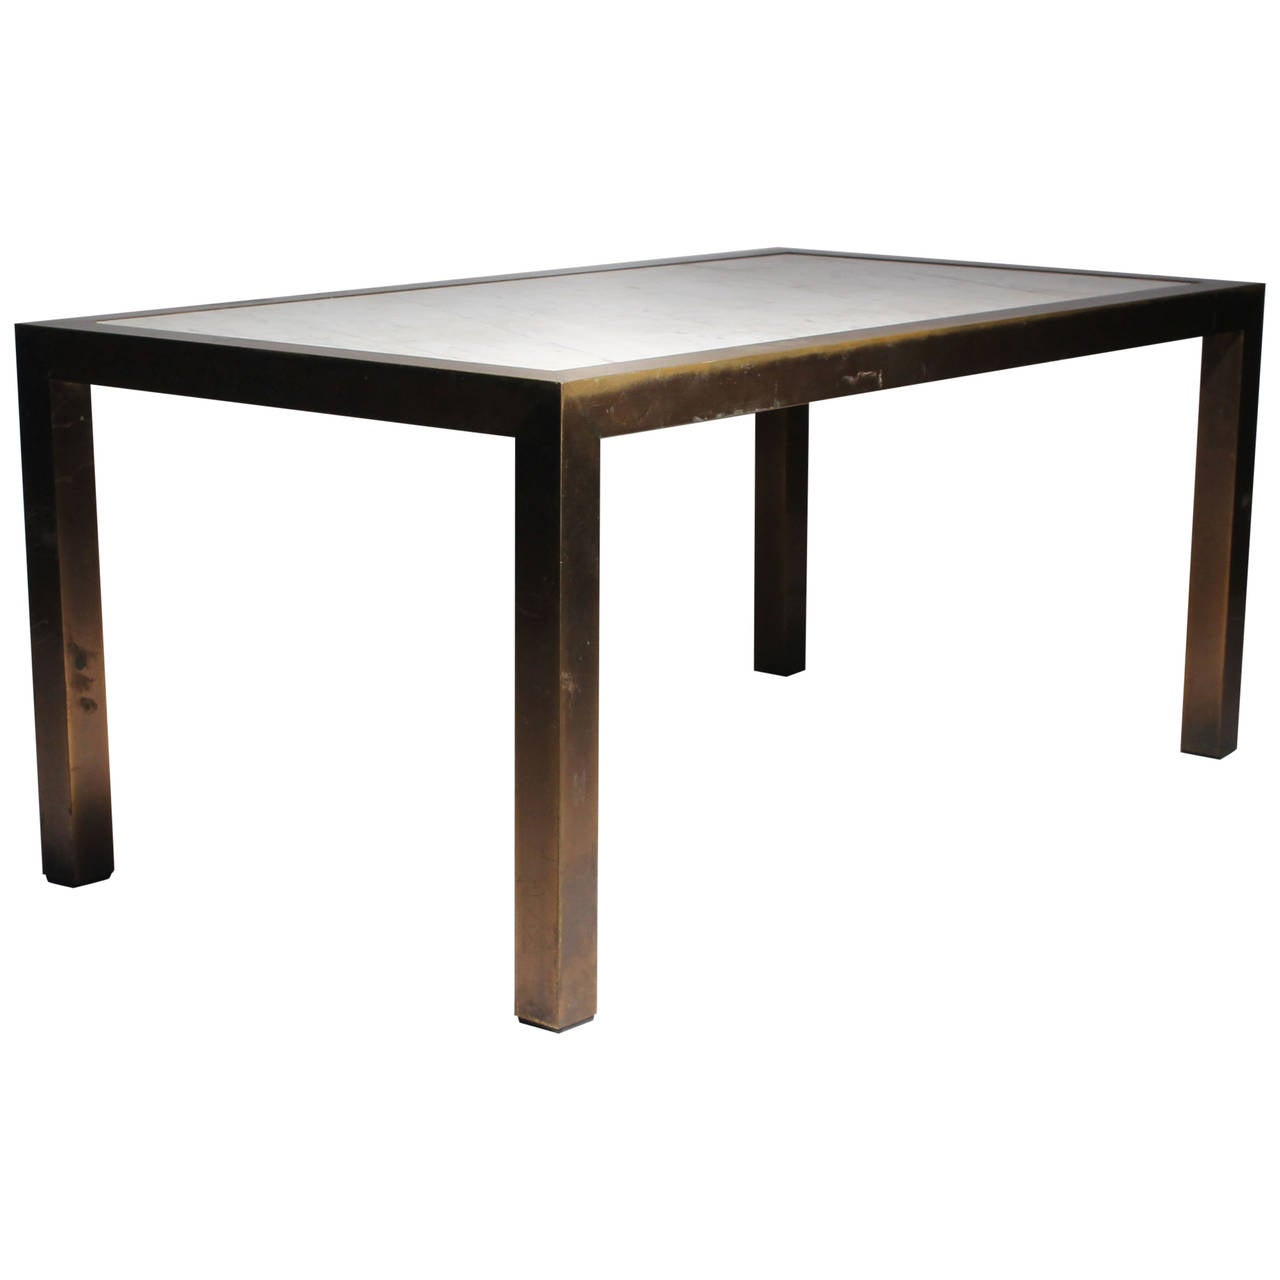 Vintage Parsons Brass Marble Brueton Coffee Table In Style Of Milo Baughman At 1stdibs